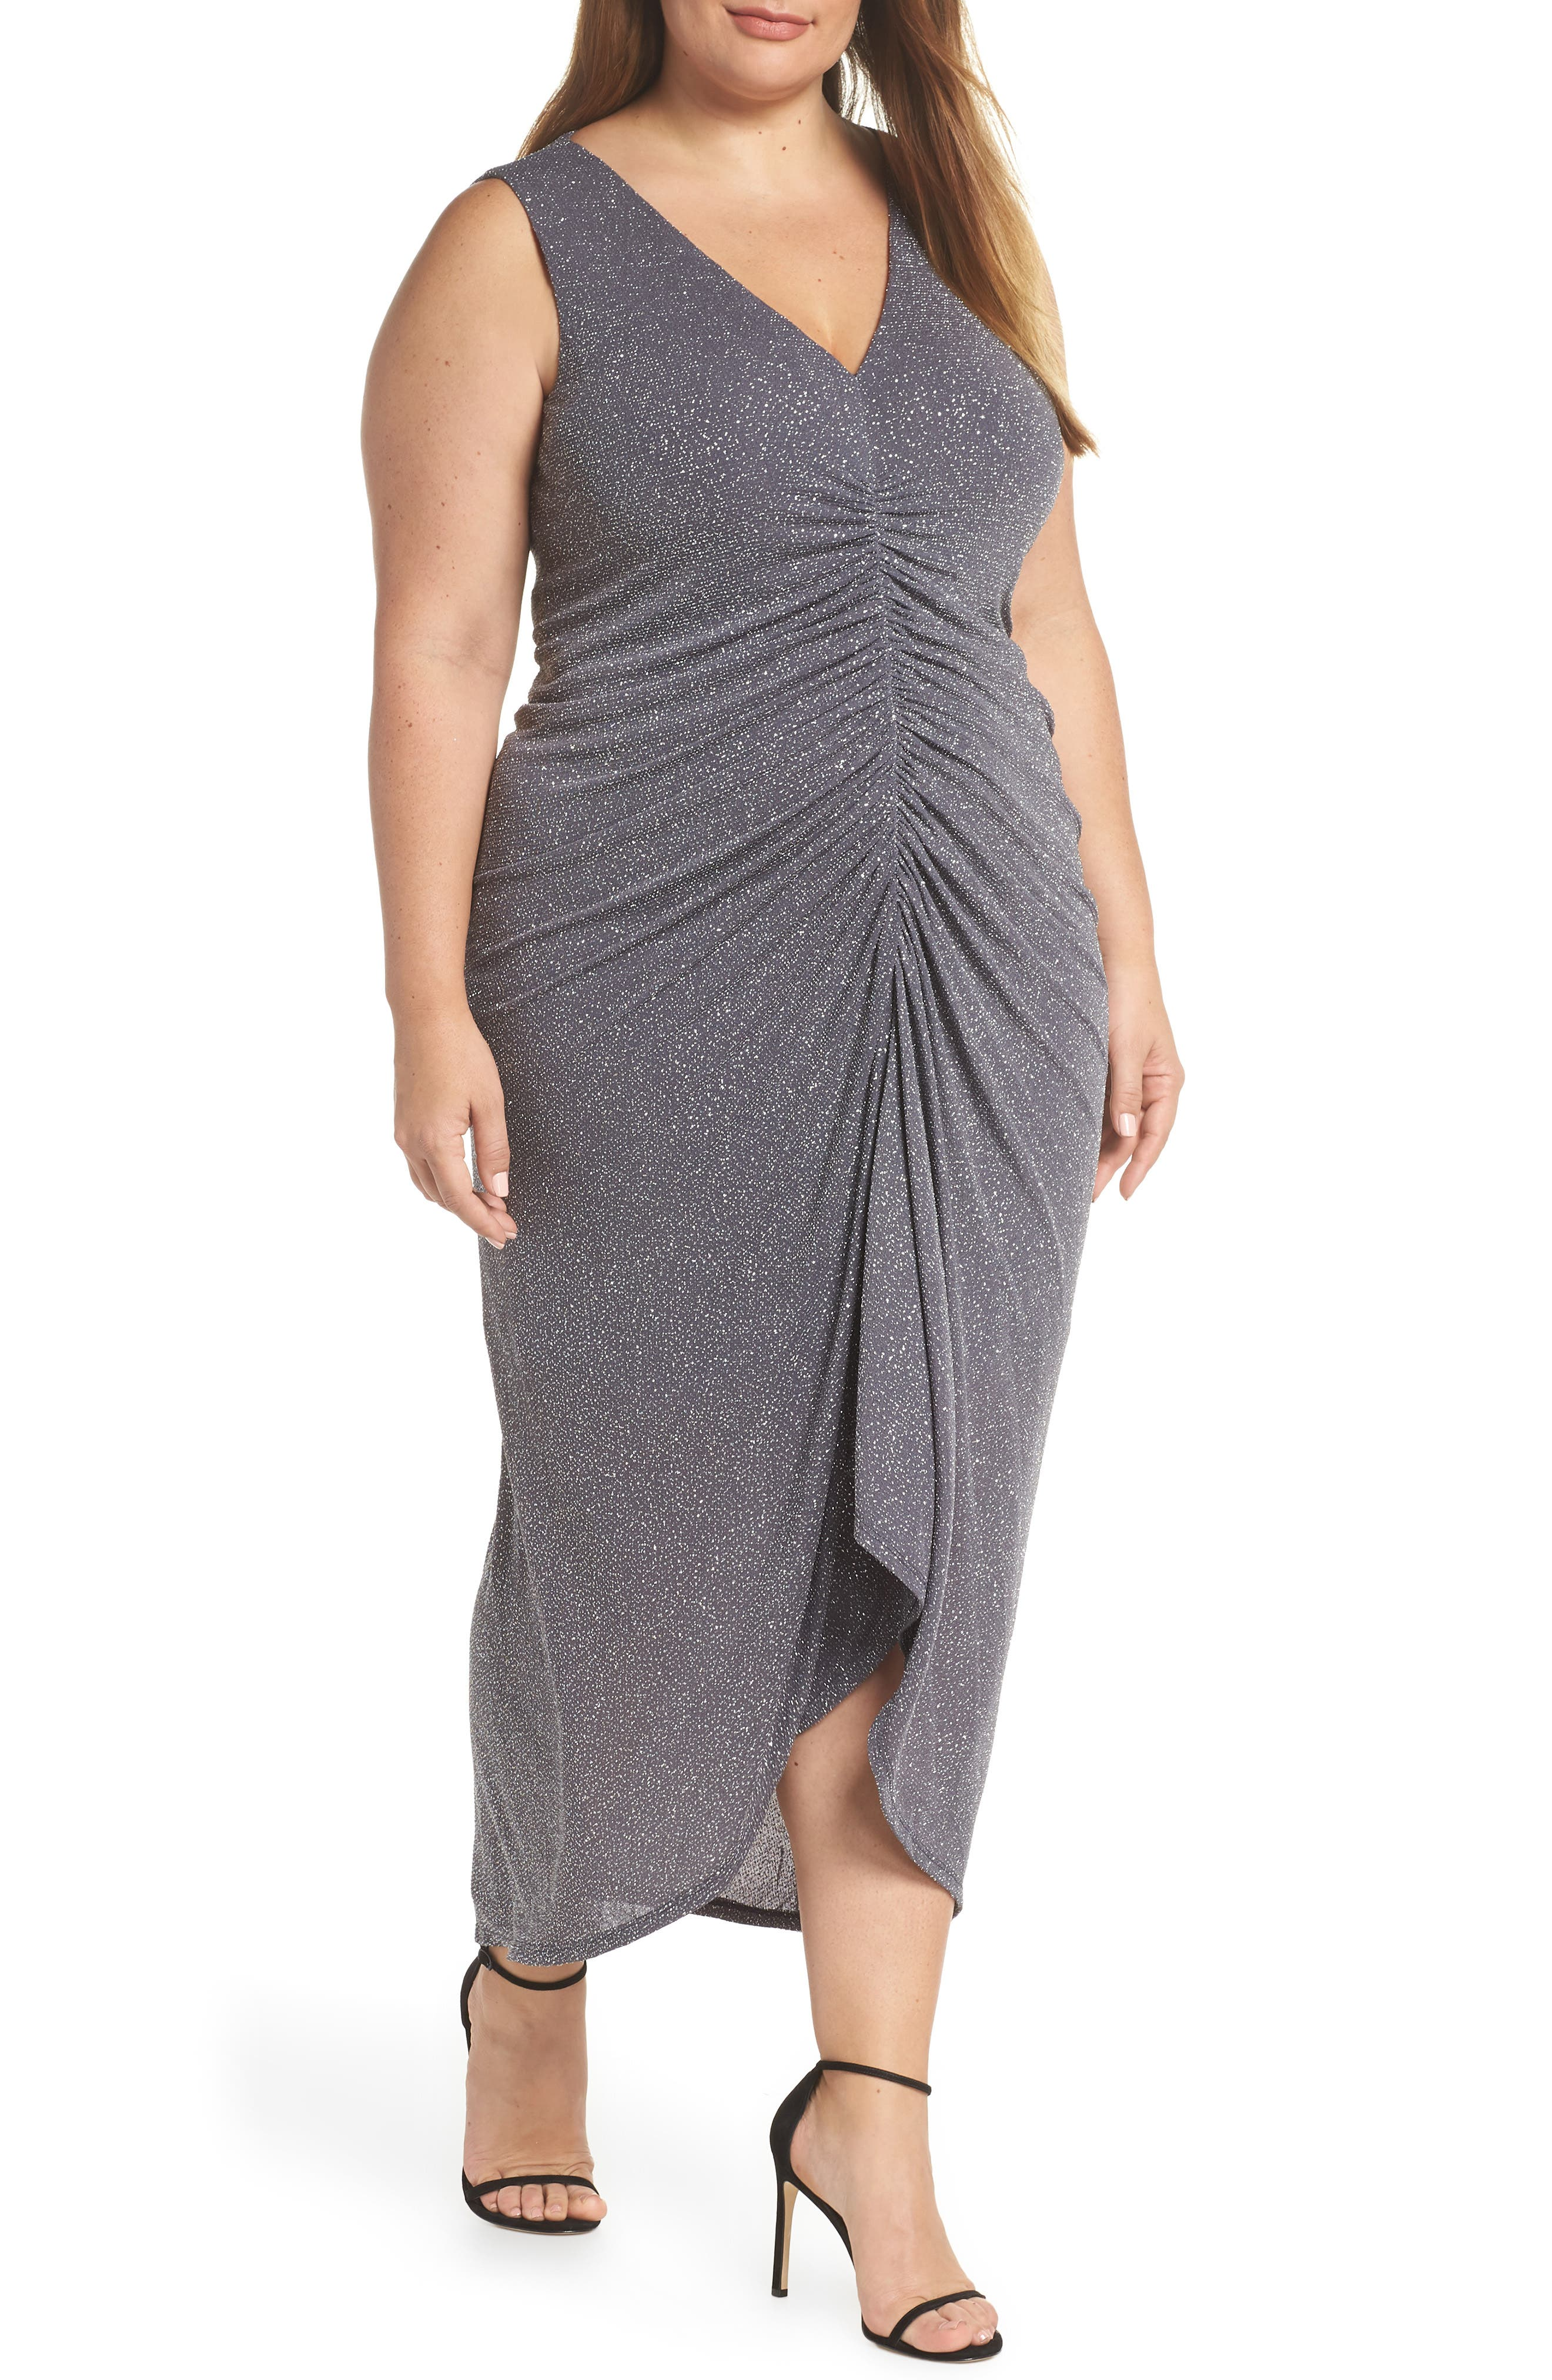 Plus Size Vince Camuto Sleeveless Ruched Front Metallic Evening Dress, Black